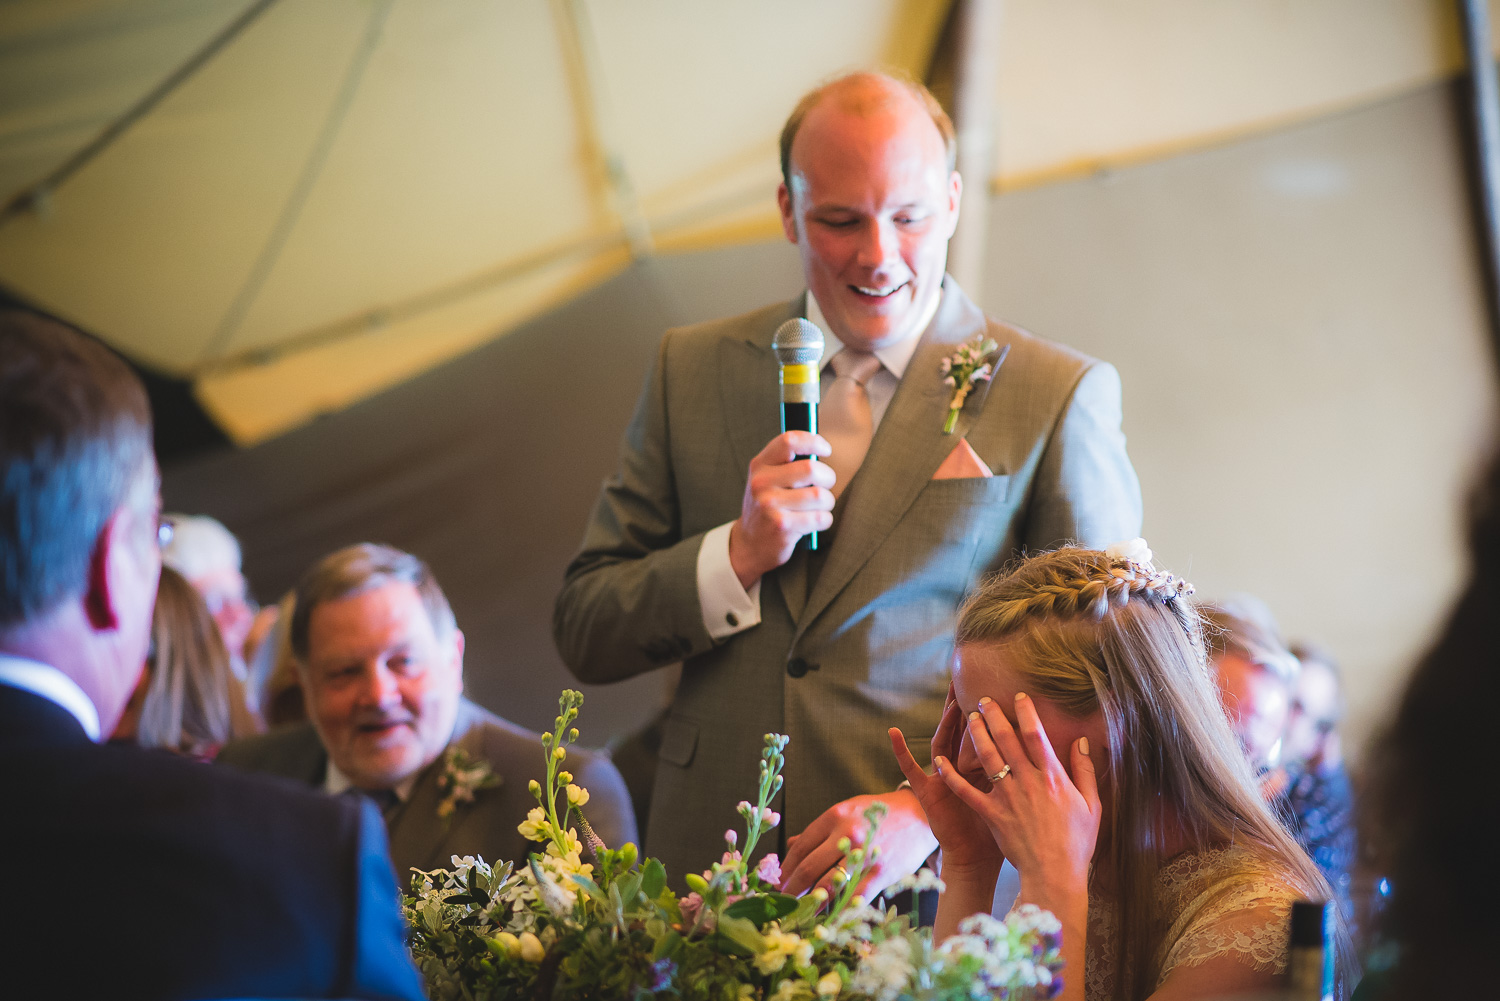 wedding-photographer-sussex-tipi-91.jpg